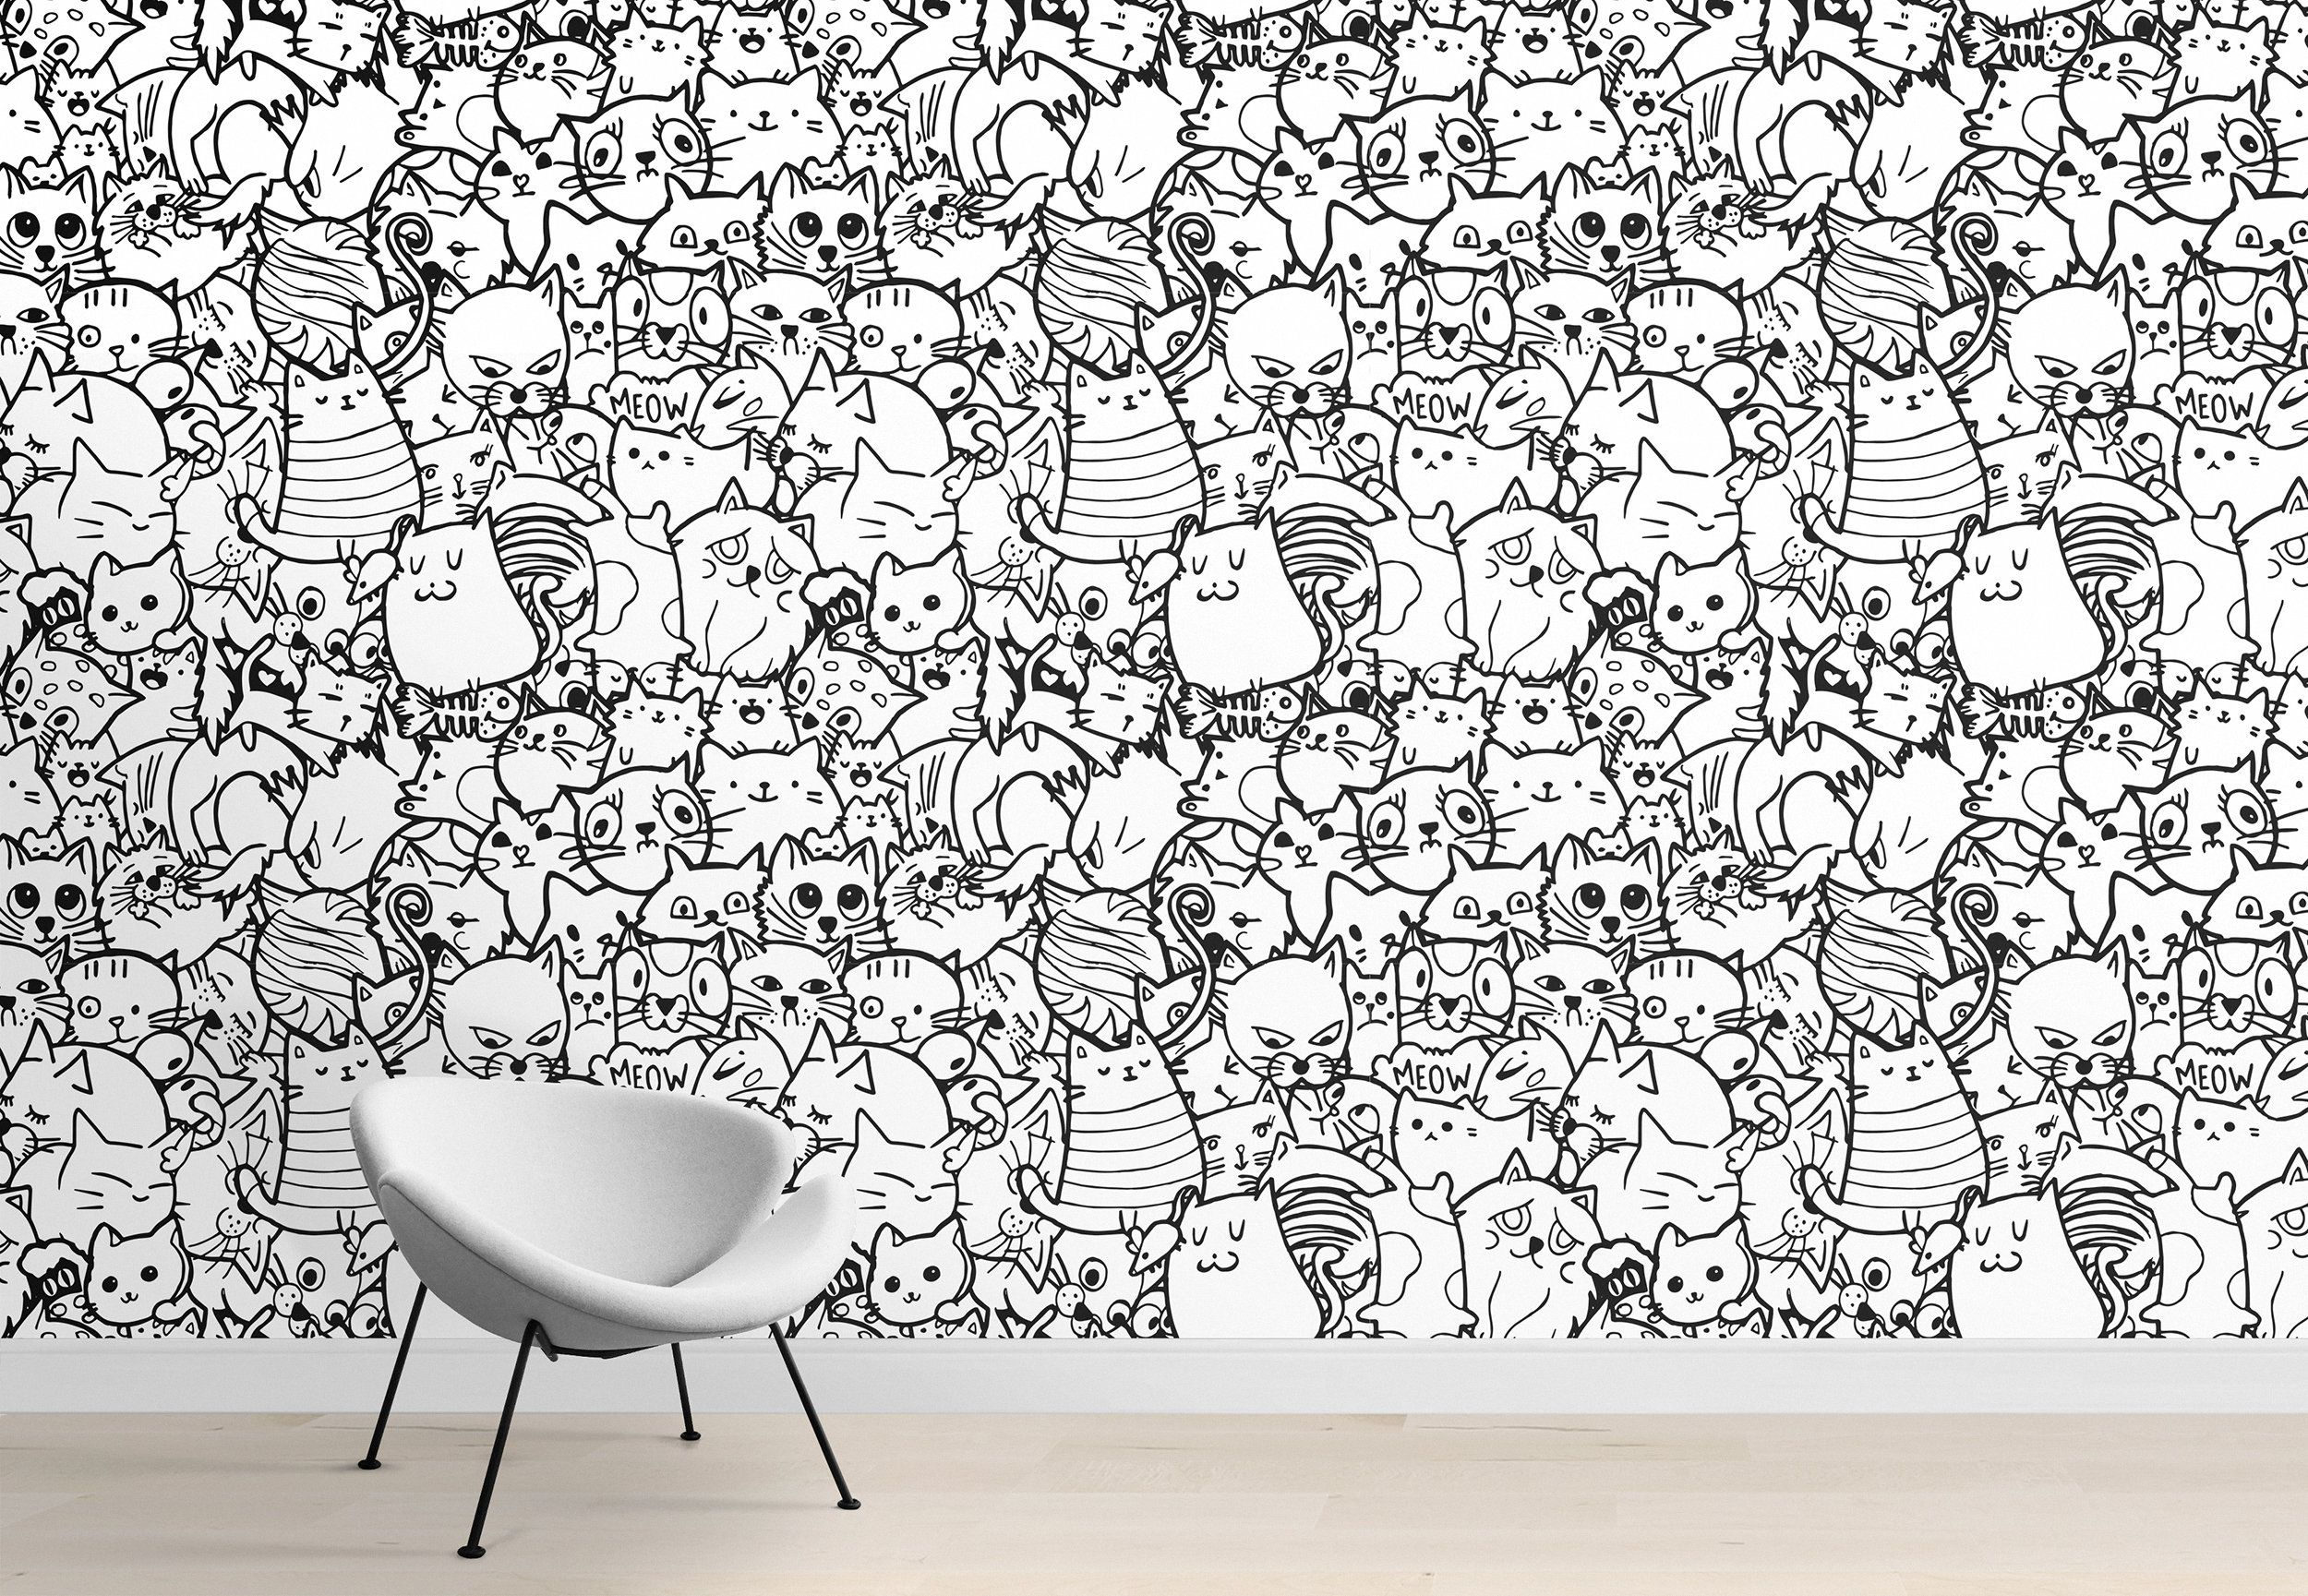 Kids room doodles wallpaper, nursery wall murals, black